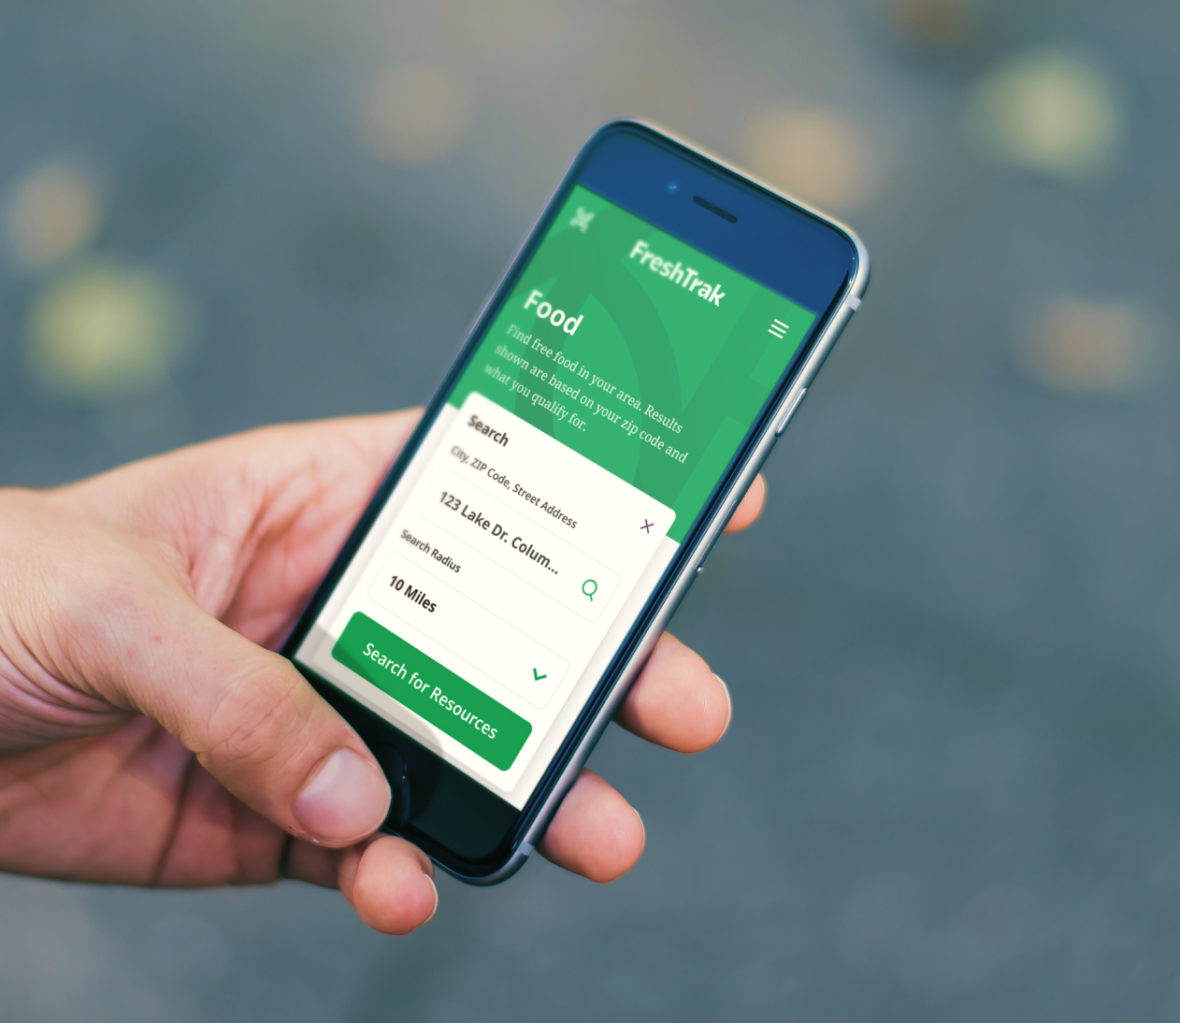 Customer using FreshTrak on their mobile phone to search for food events nearby